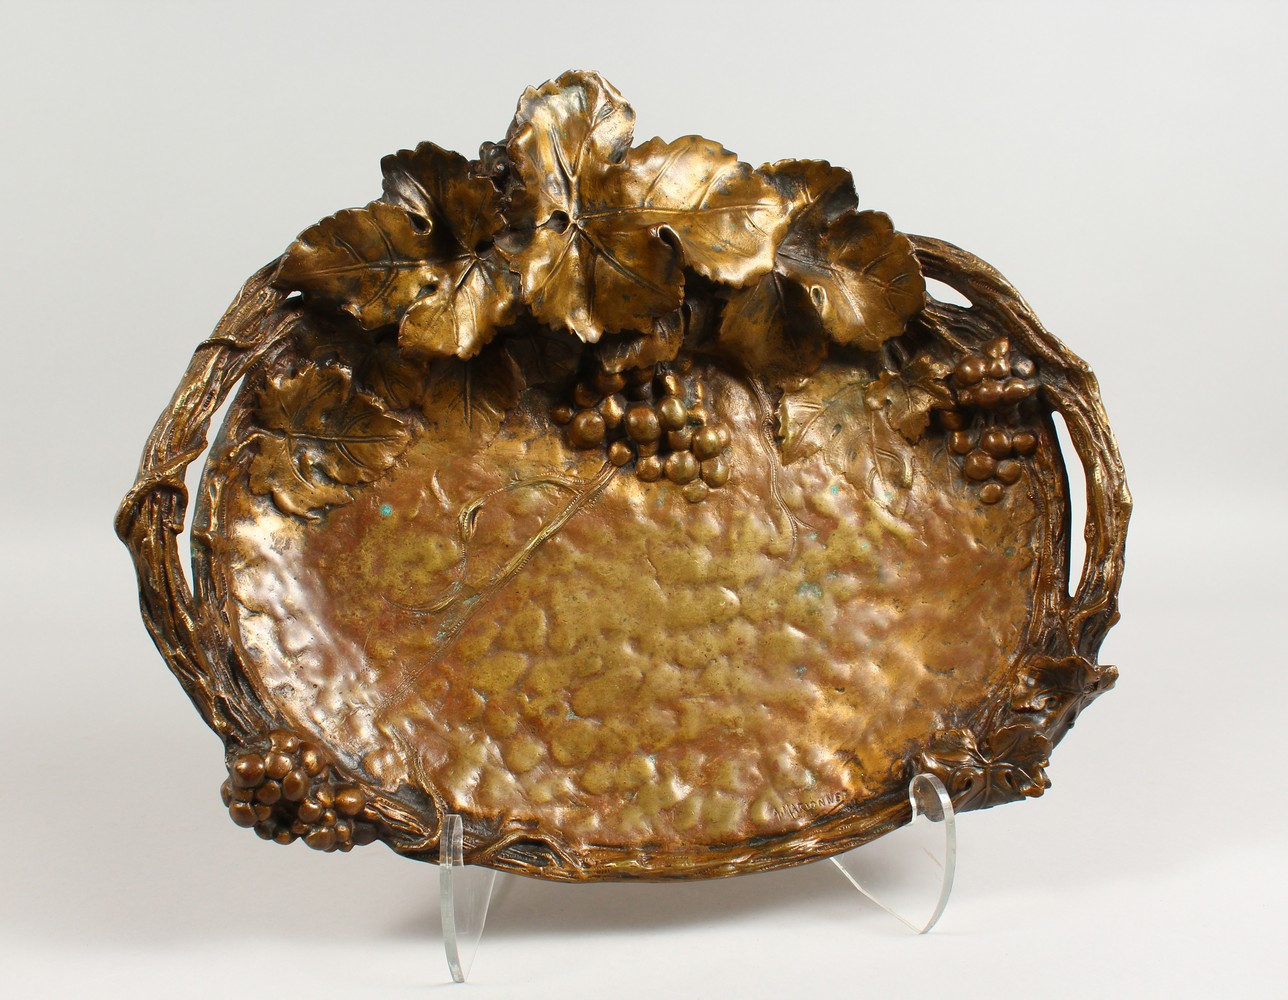 Lot 1569 - ALBERT MARIONNET (1852-1910) A SUPERB LARGE GLASS BRONZE OVAL TRAY, with rustic handles and fruiting